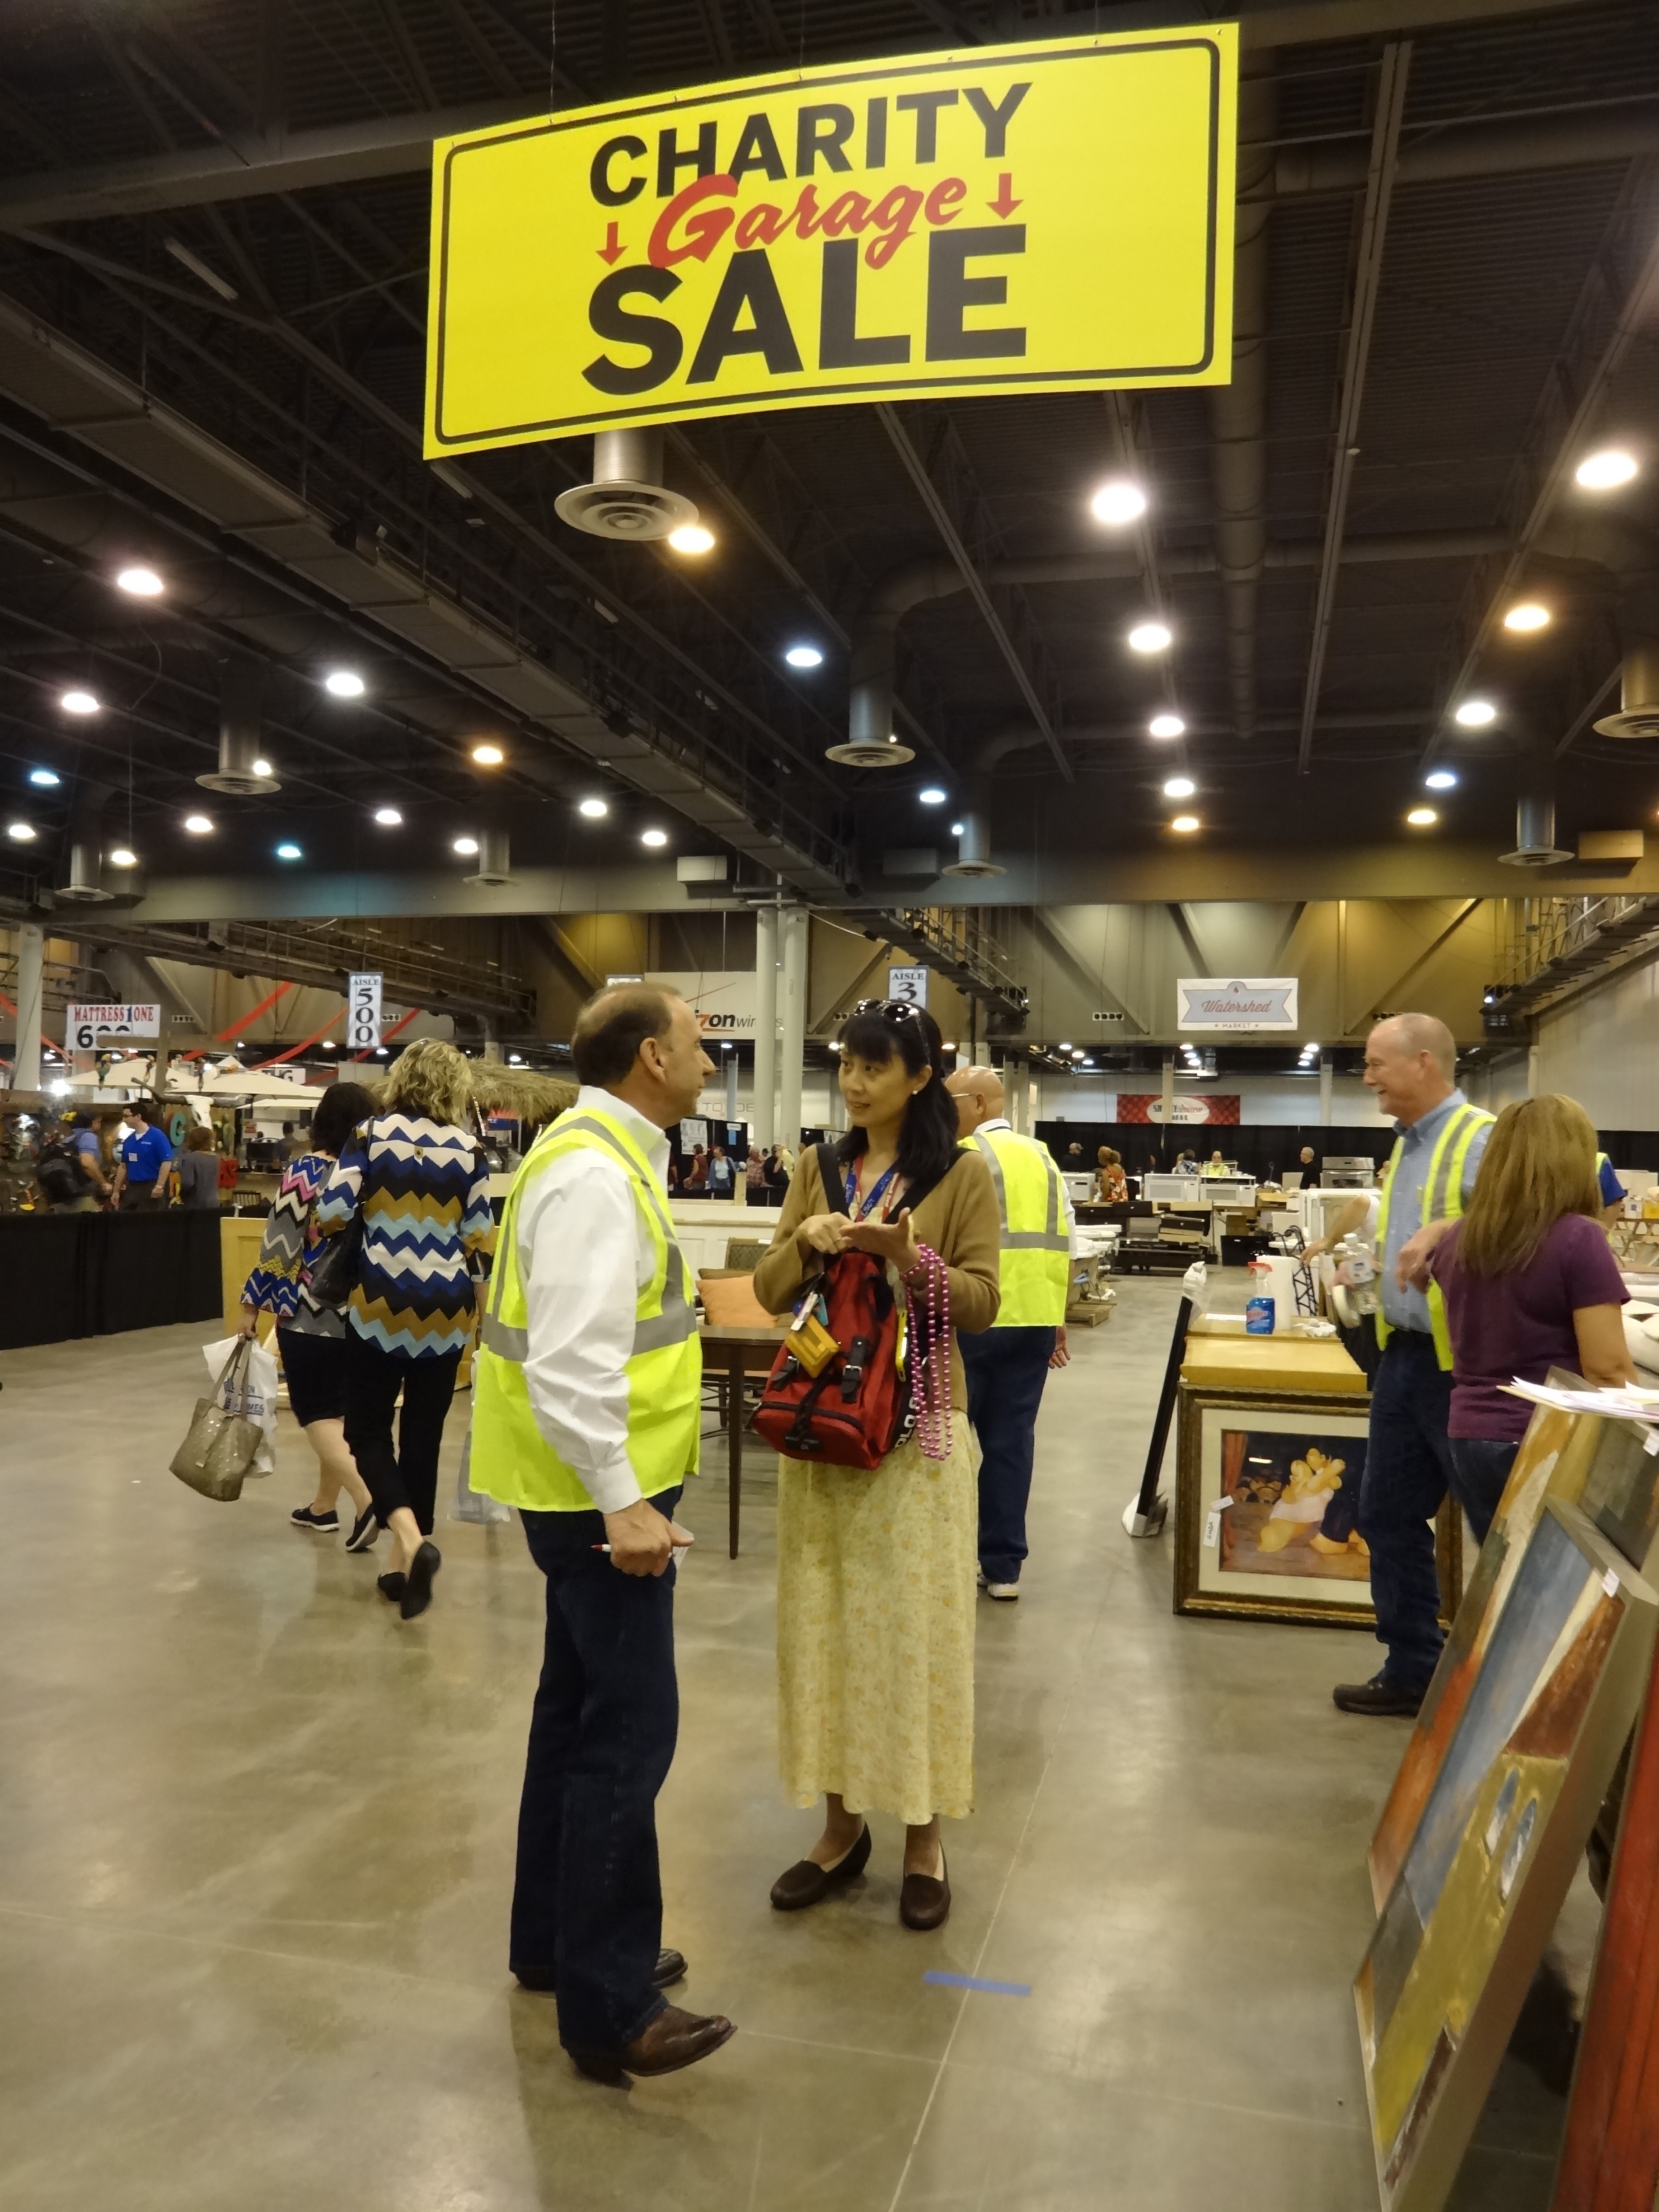 Remodelers Charity Garage Sale, NRG, Sept.19 20 | Houston Style Magazine |  Urban Weekly Newspaper Publication Website